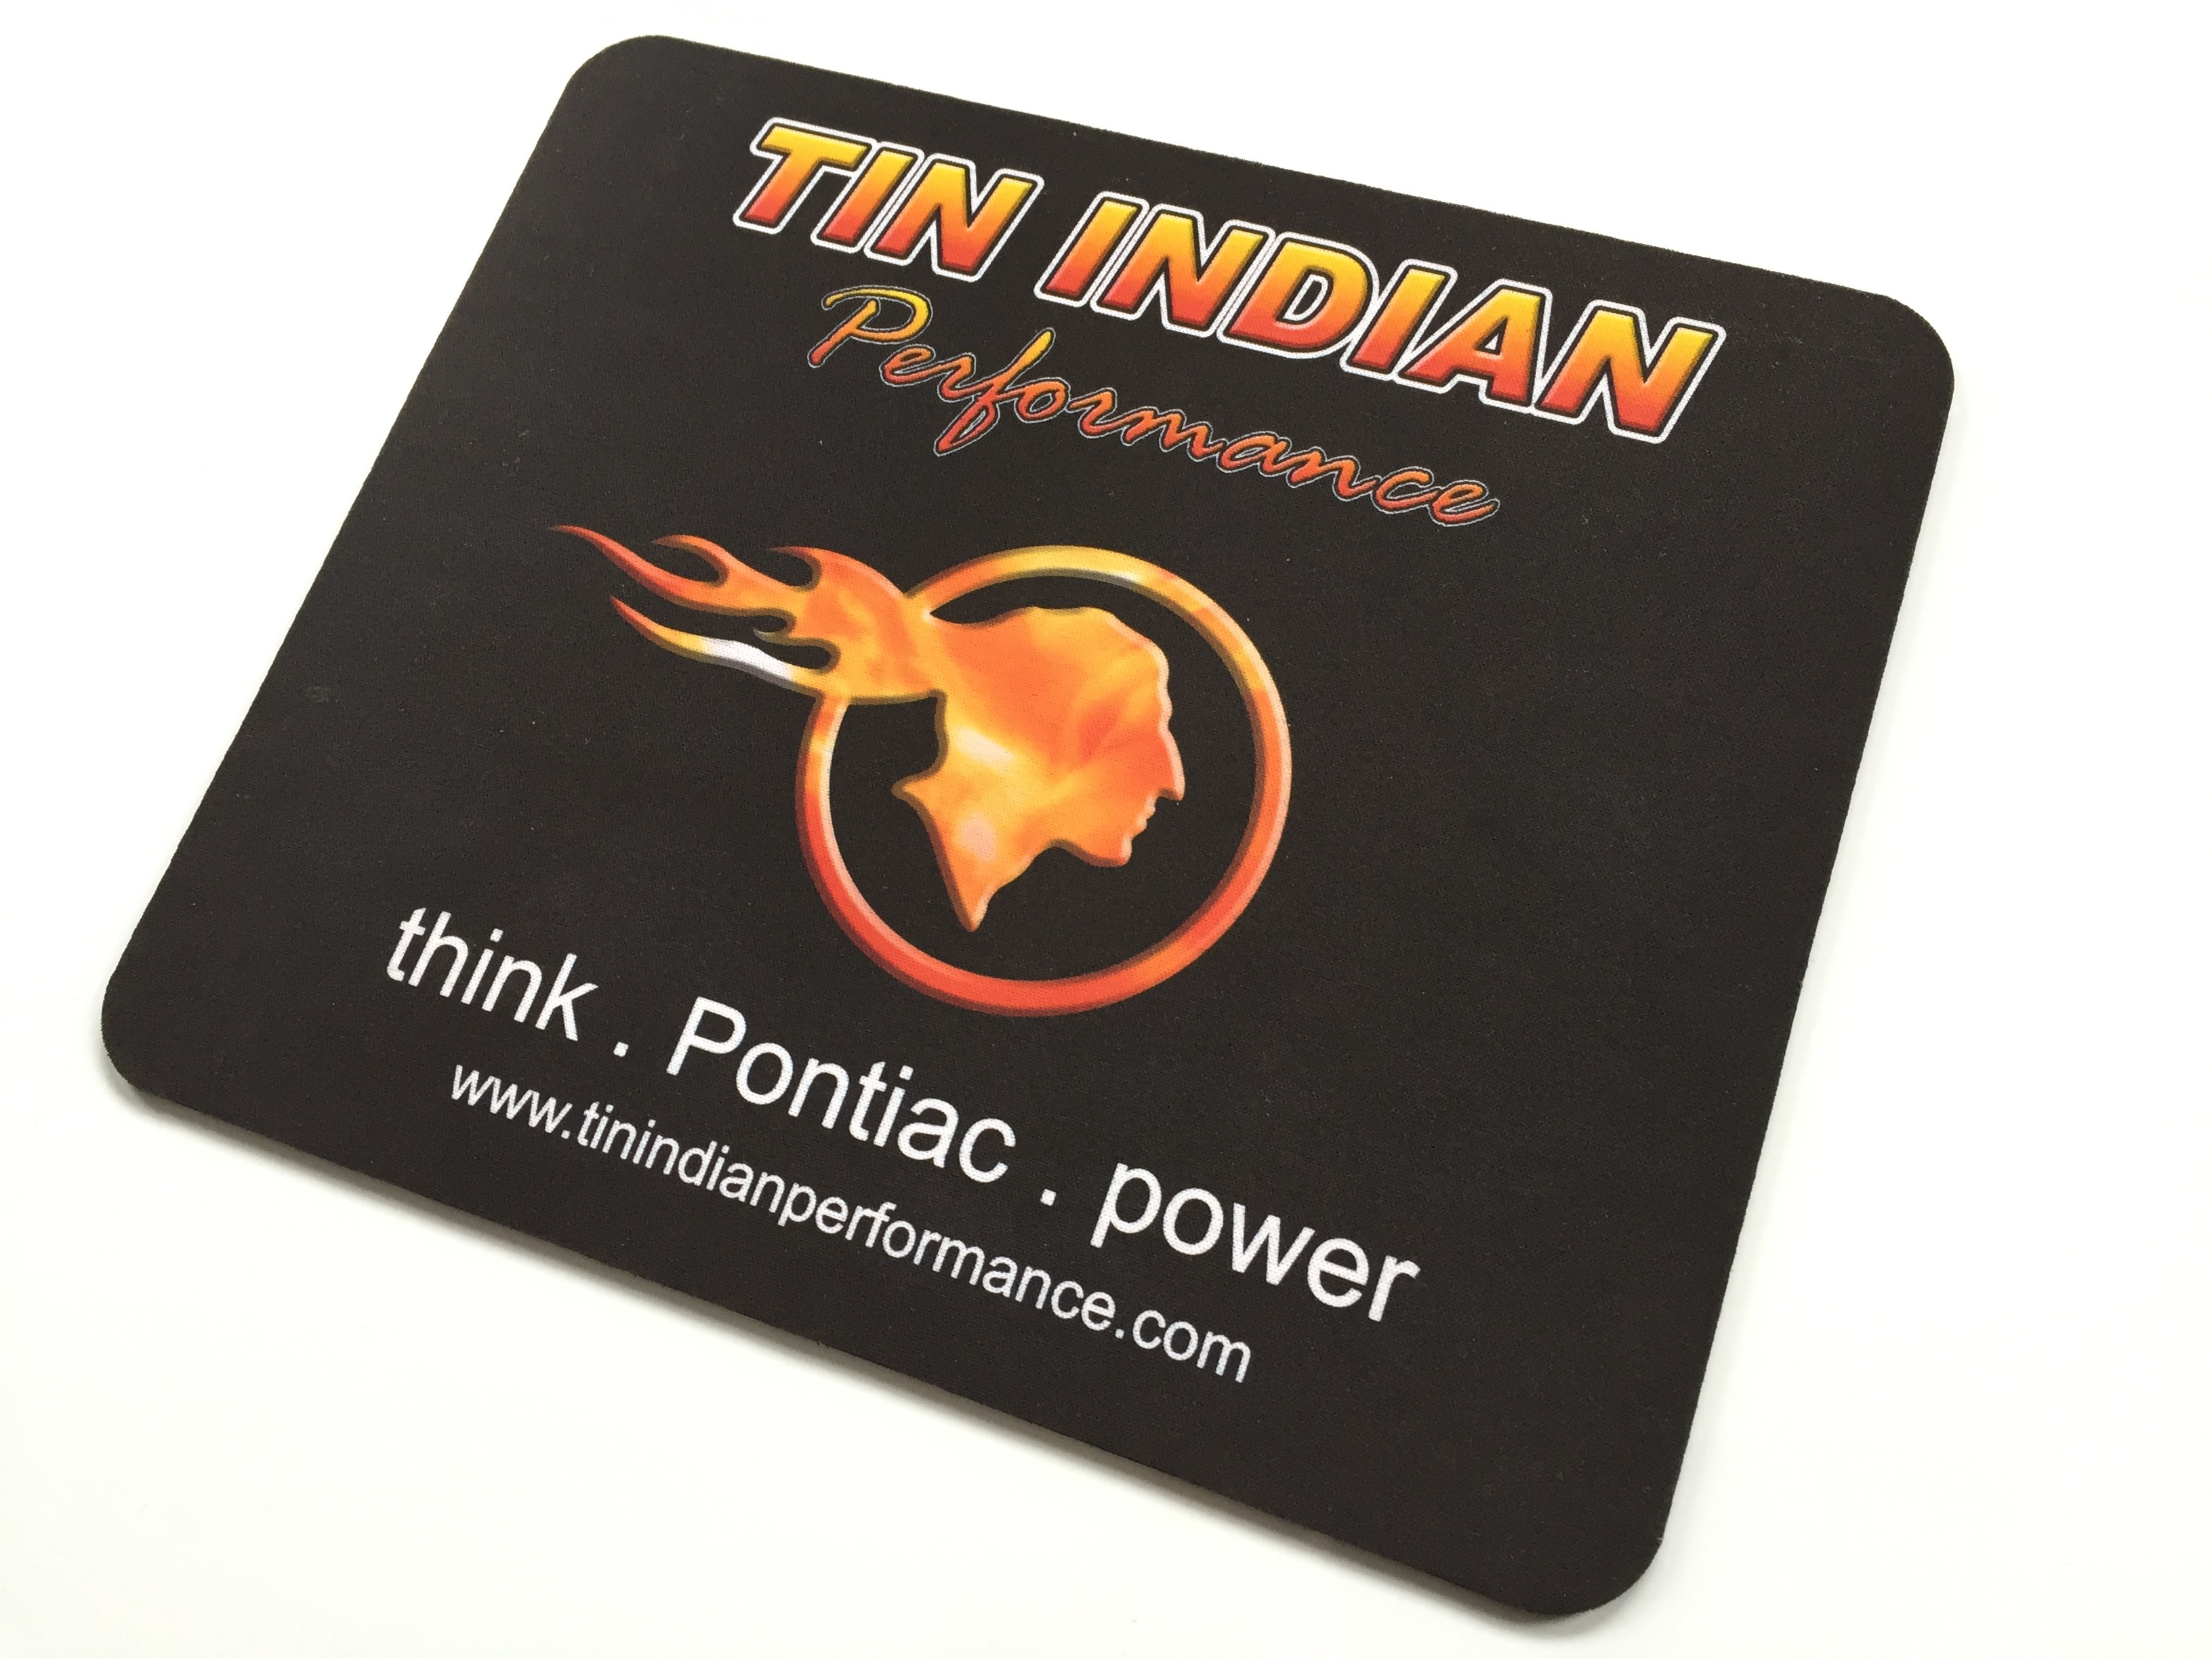 Tin Indian Performace Logo mouse pad 1